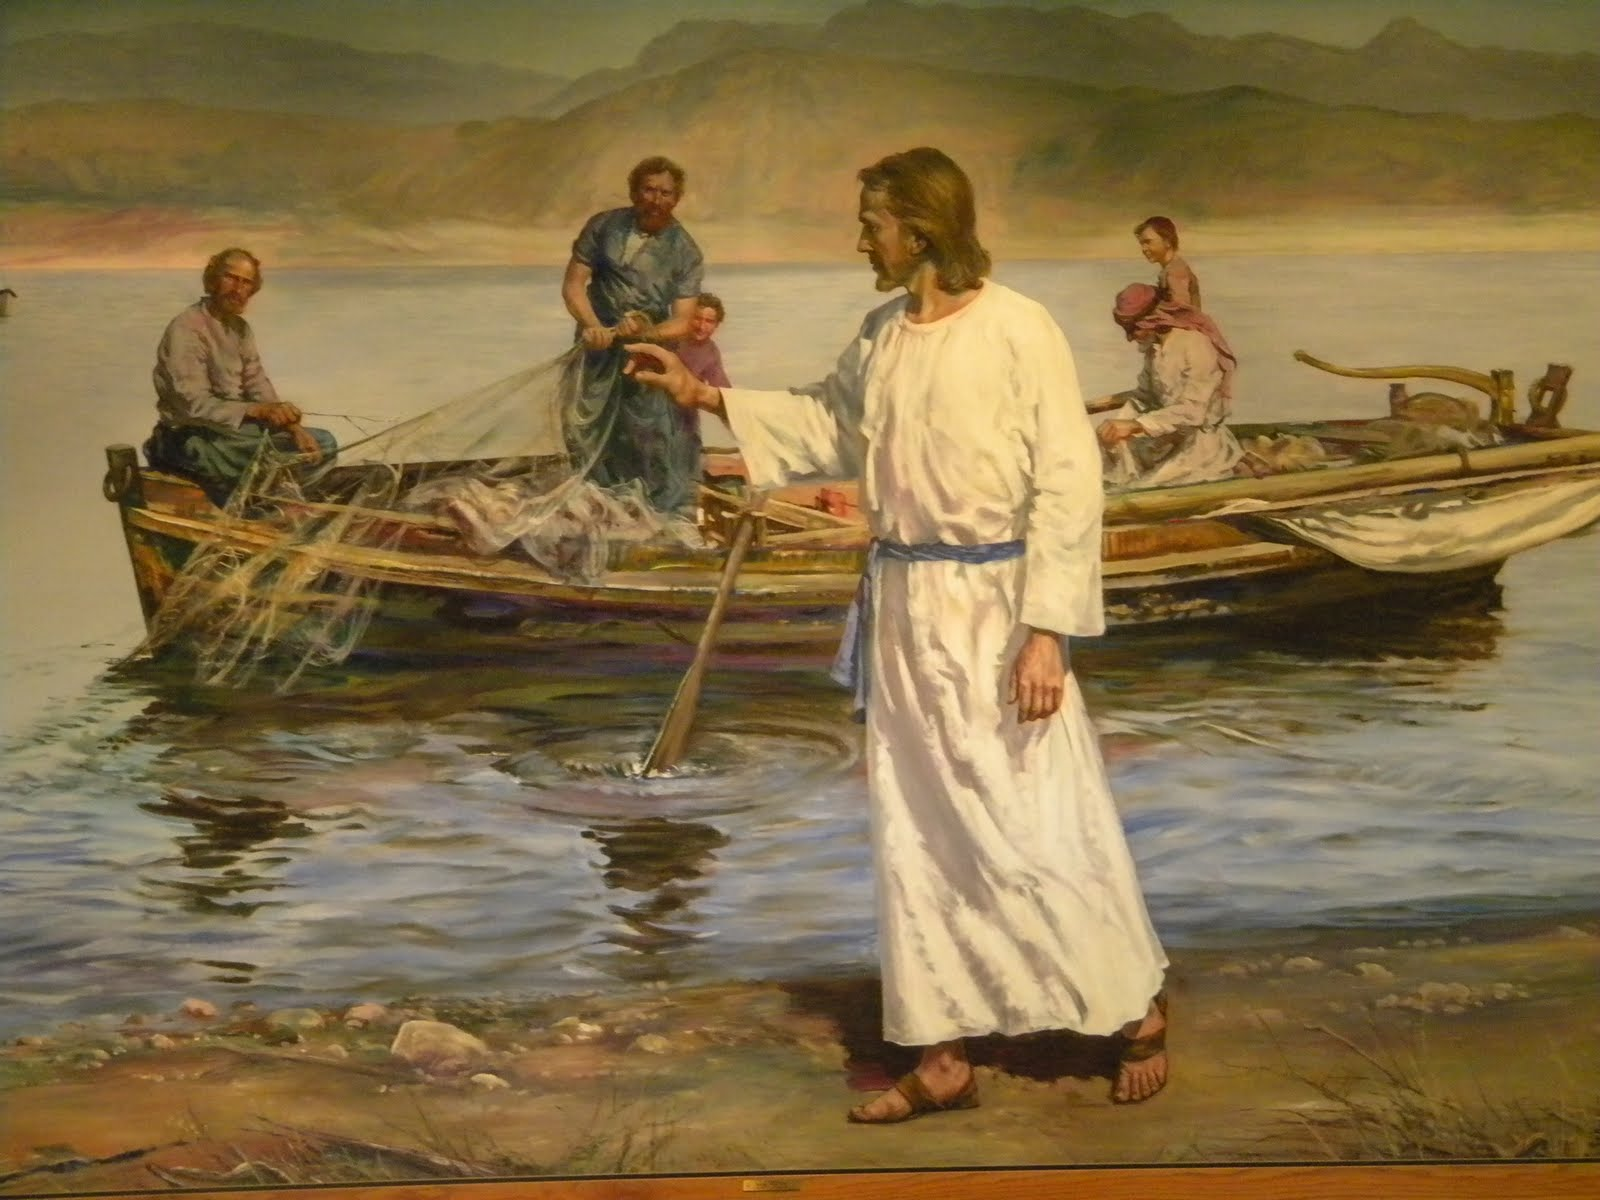 My fuller feelings feed my sheep for Fishing in the bible